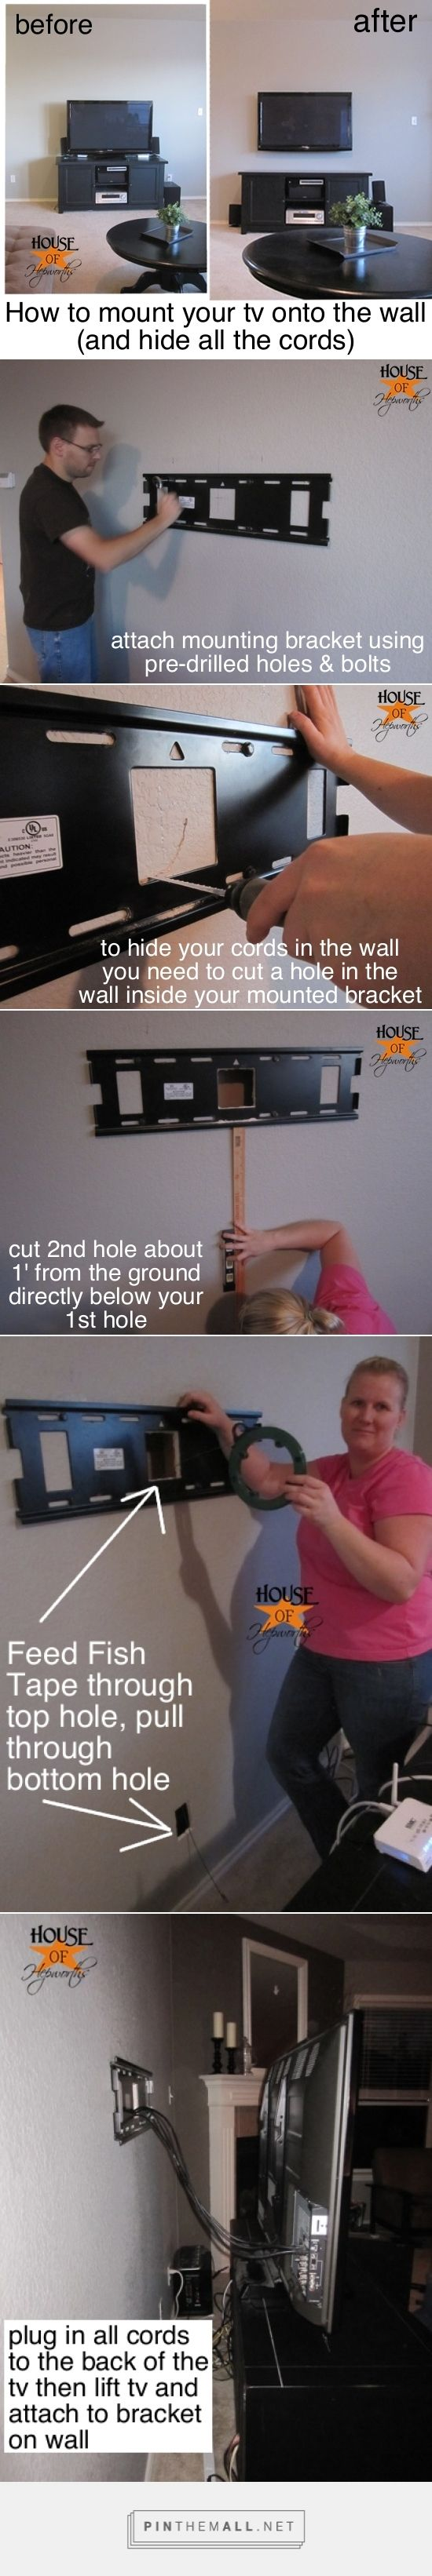 Mounting your tv to the wall and hiding all the cords.